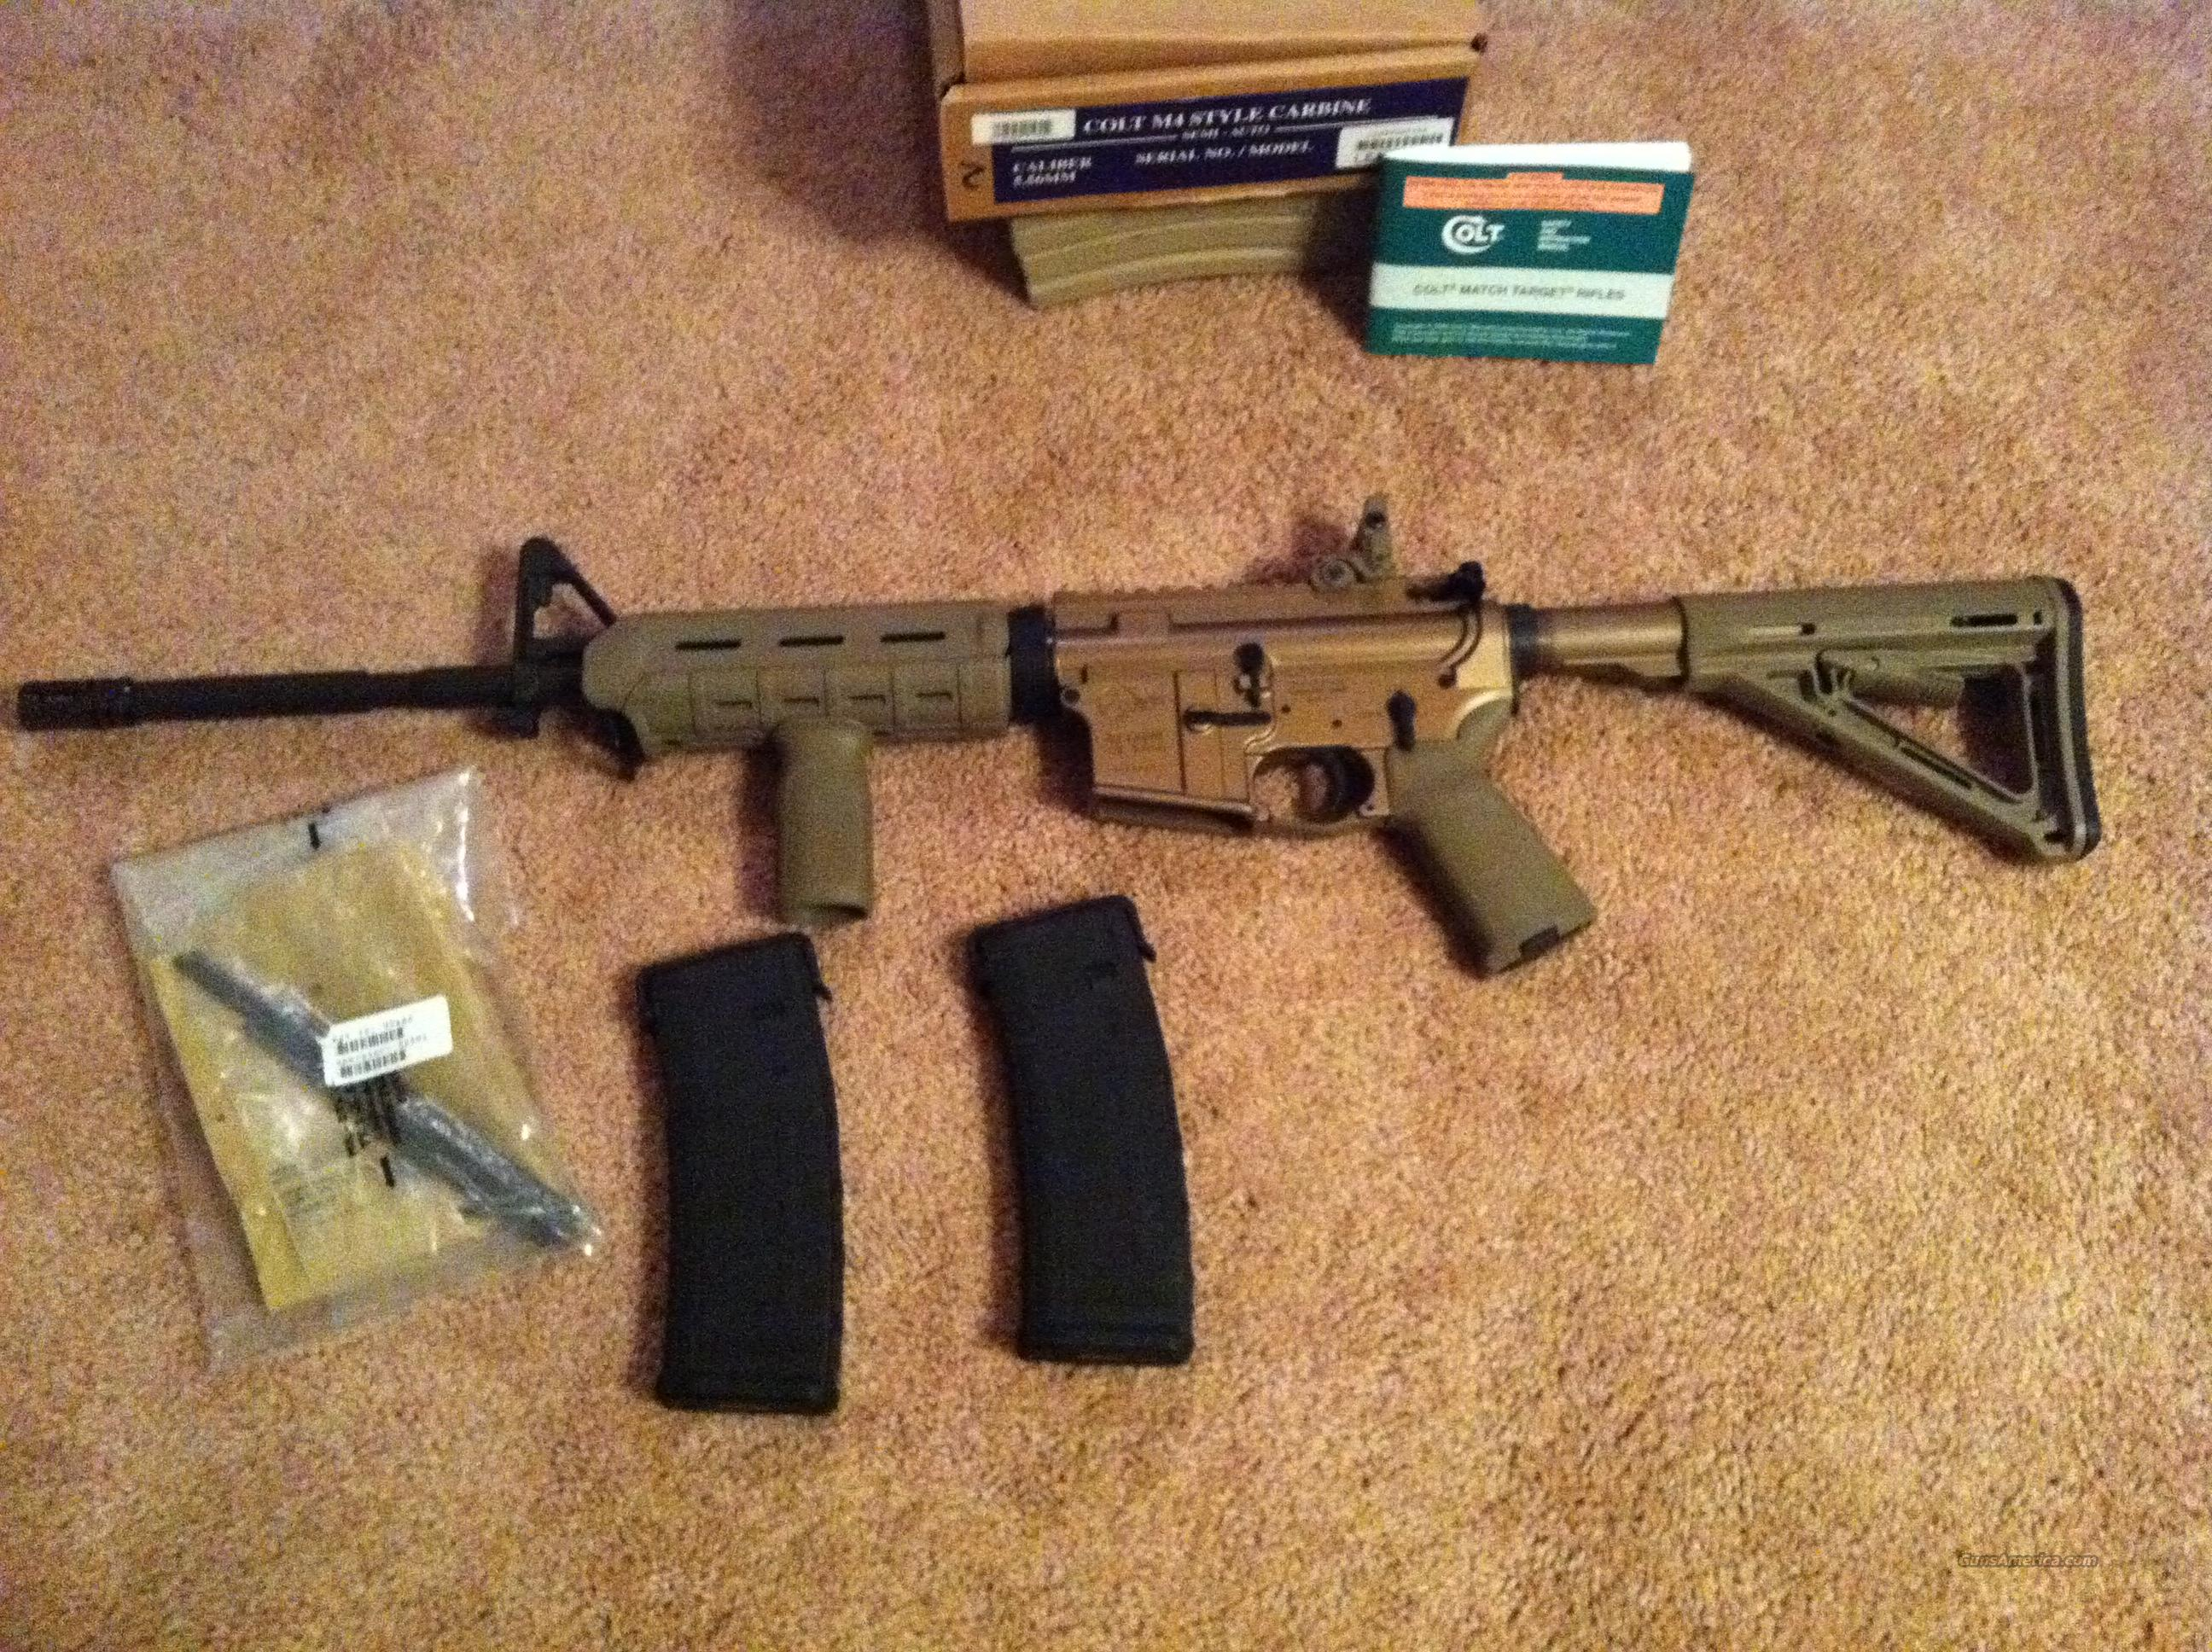 COLT Limited Edition LE6920 M4 FDE anodized receiver w/ Magpul Furniture AR15 and extra 30 rd. Magazines   Guns > Rifles > Colt Military/Tactical Rifles